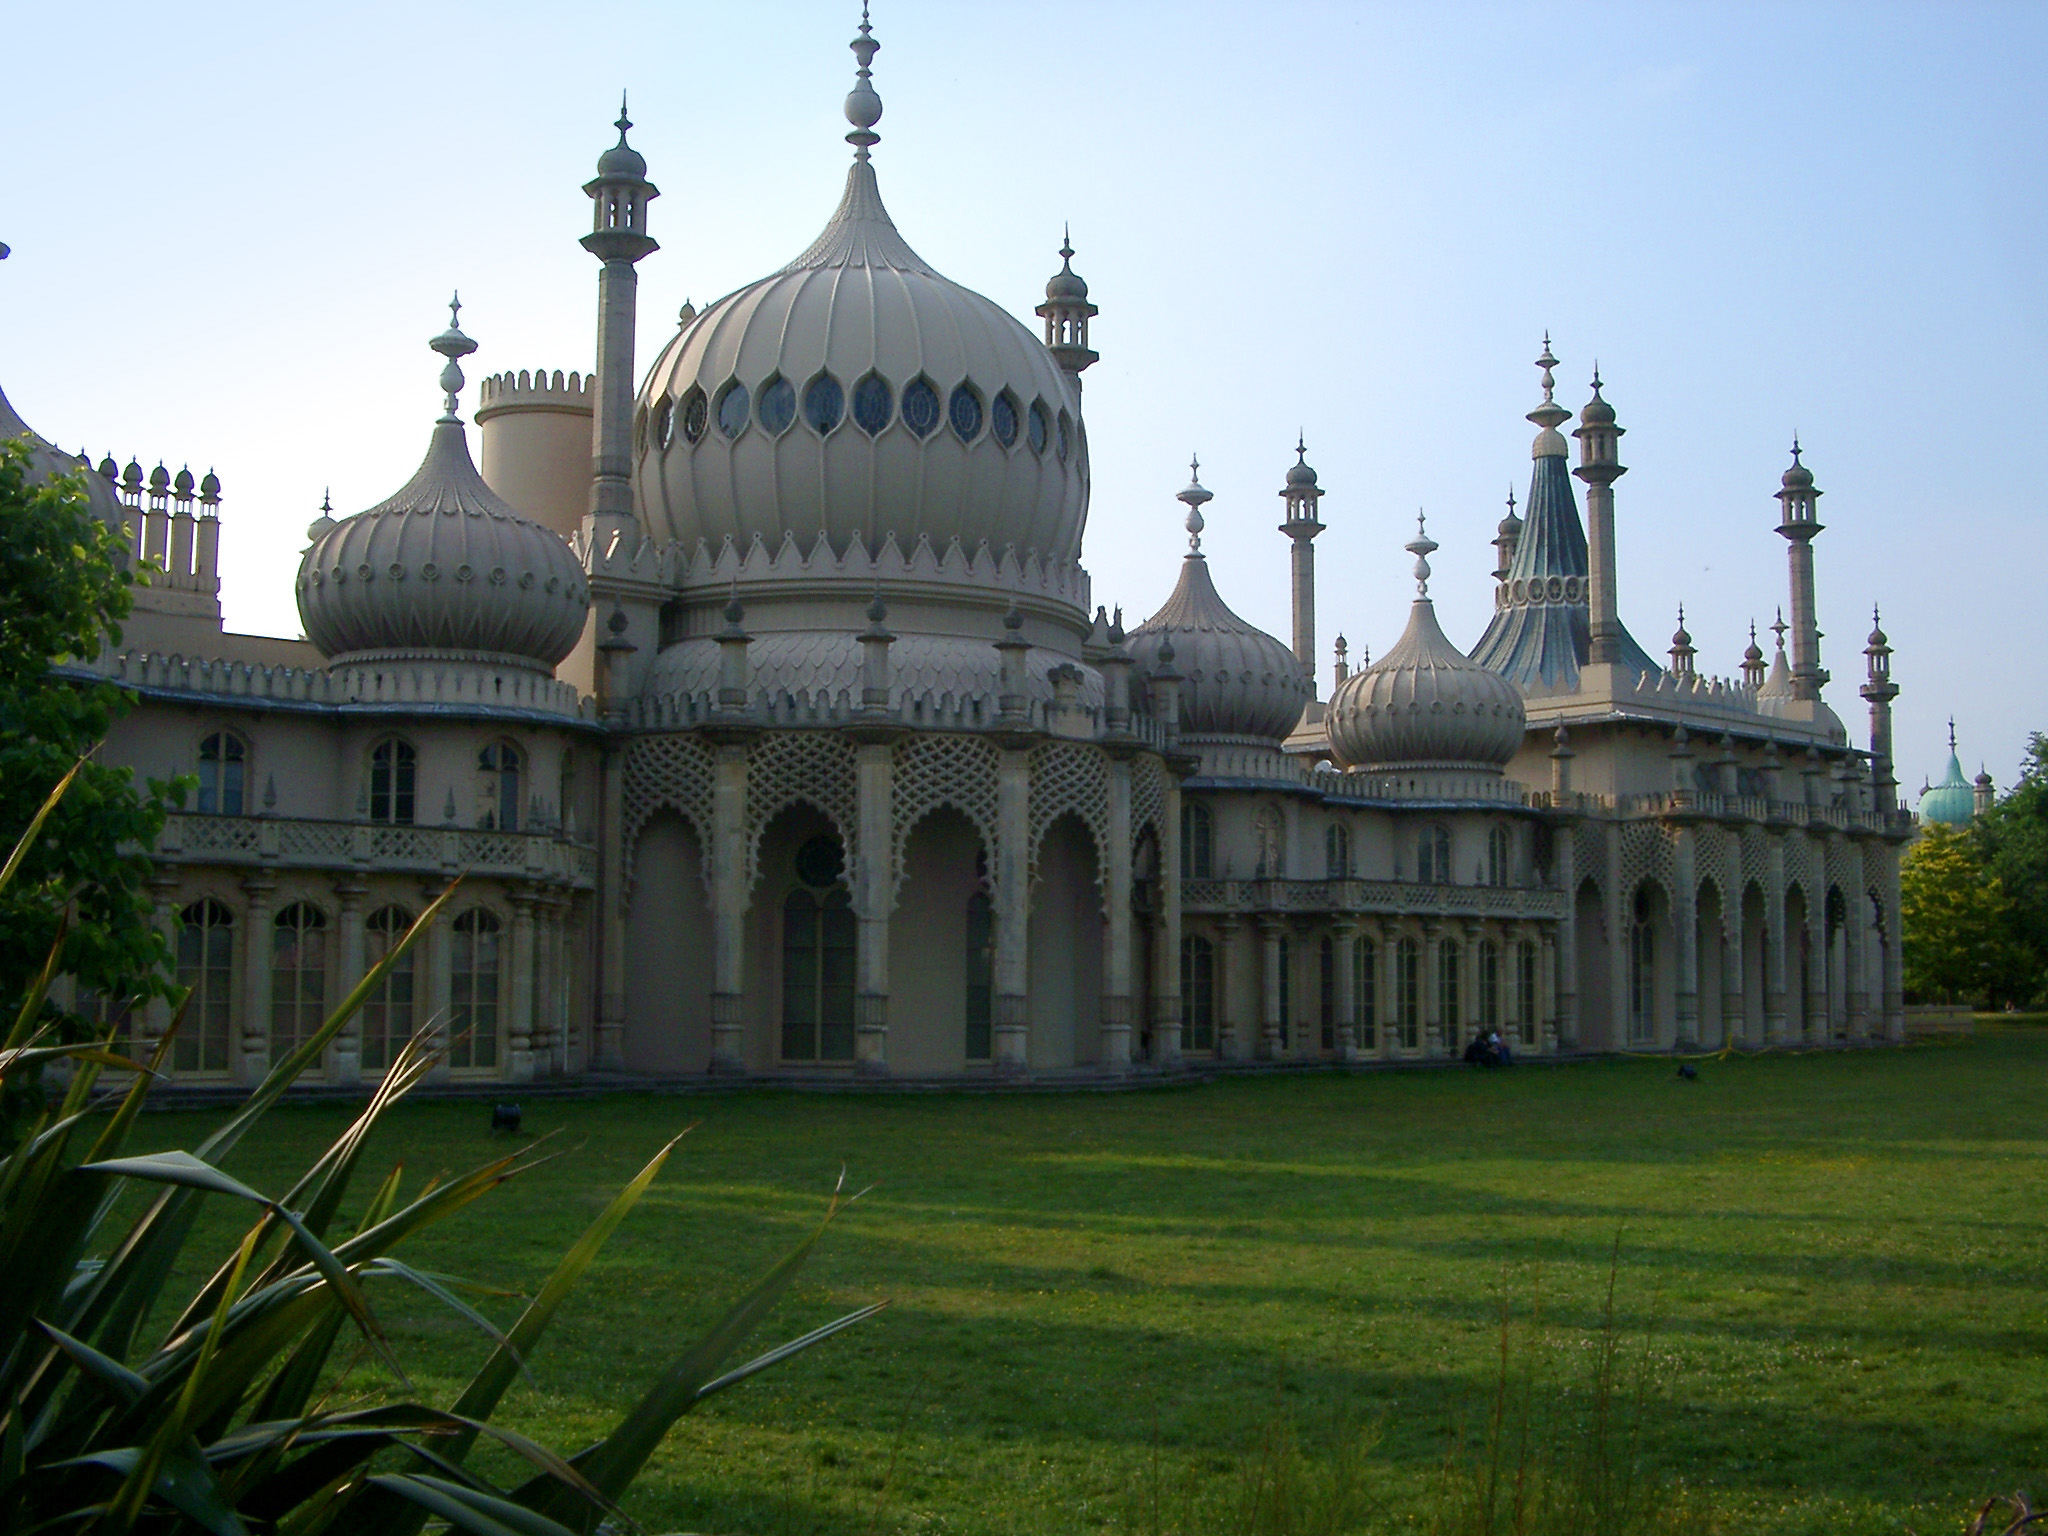 Grassy Landscape at Famous Architectural Royal Pavilion Building in Brighton, England.